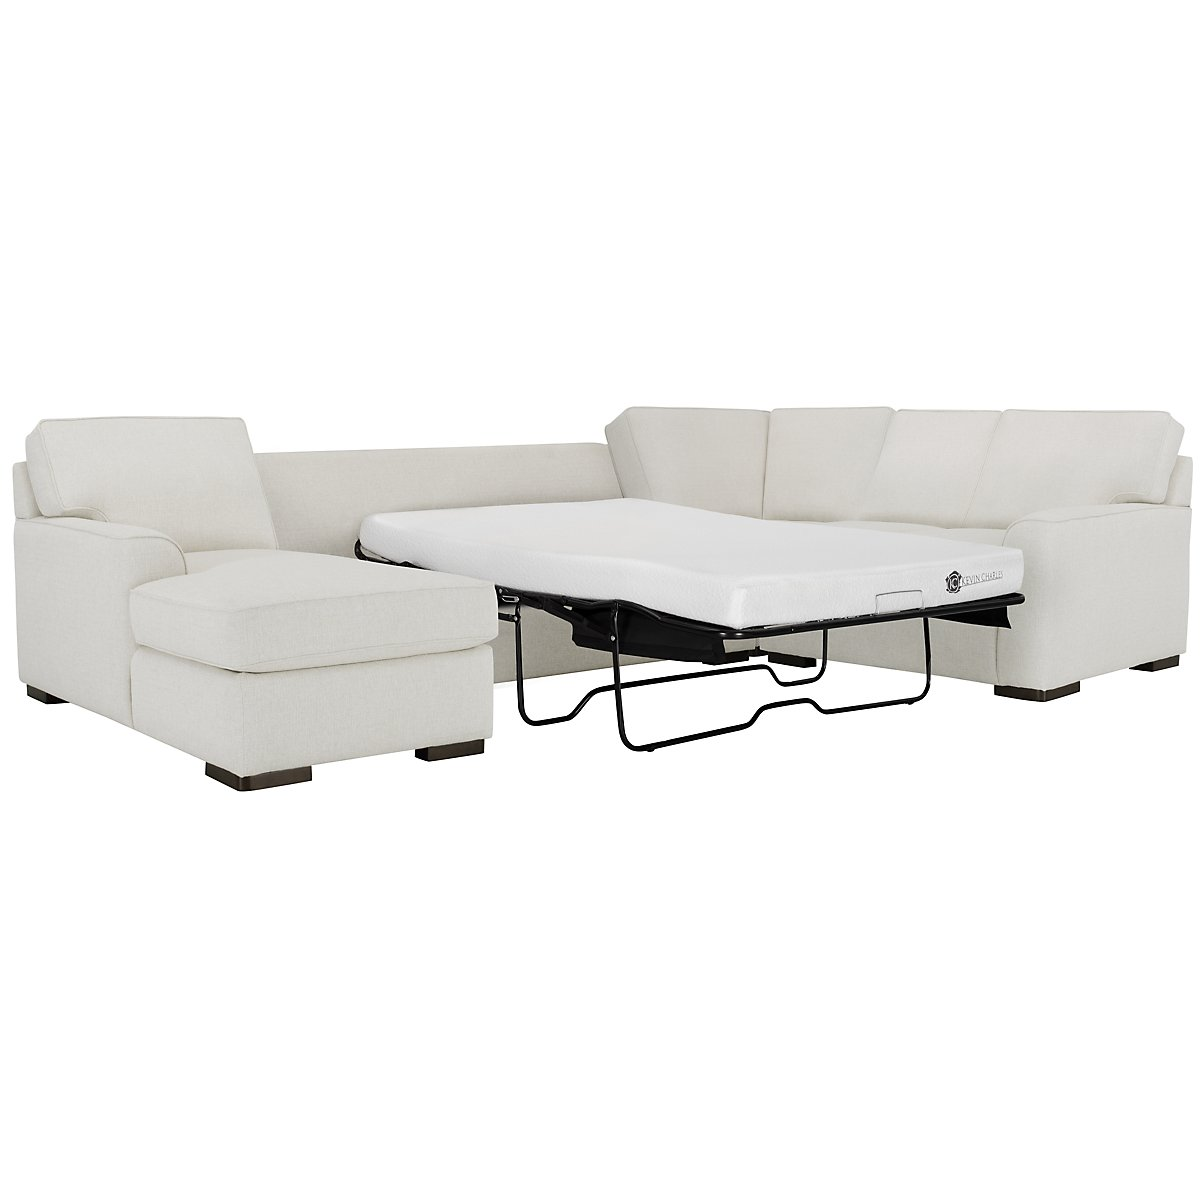 Austin White Fabric Left Chaise Memory Foam Sleeper Sectional